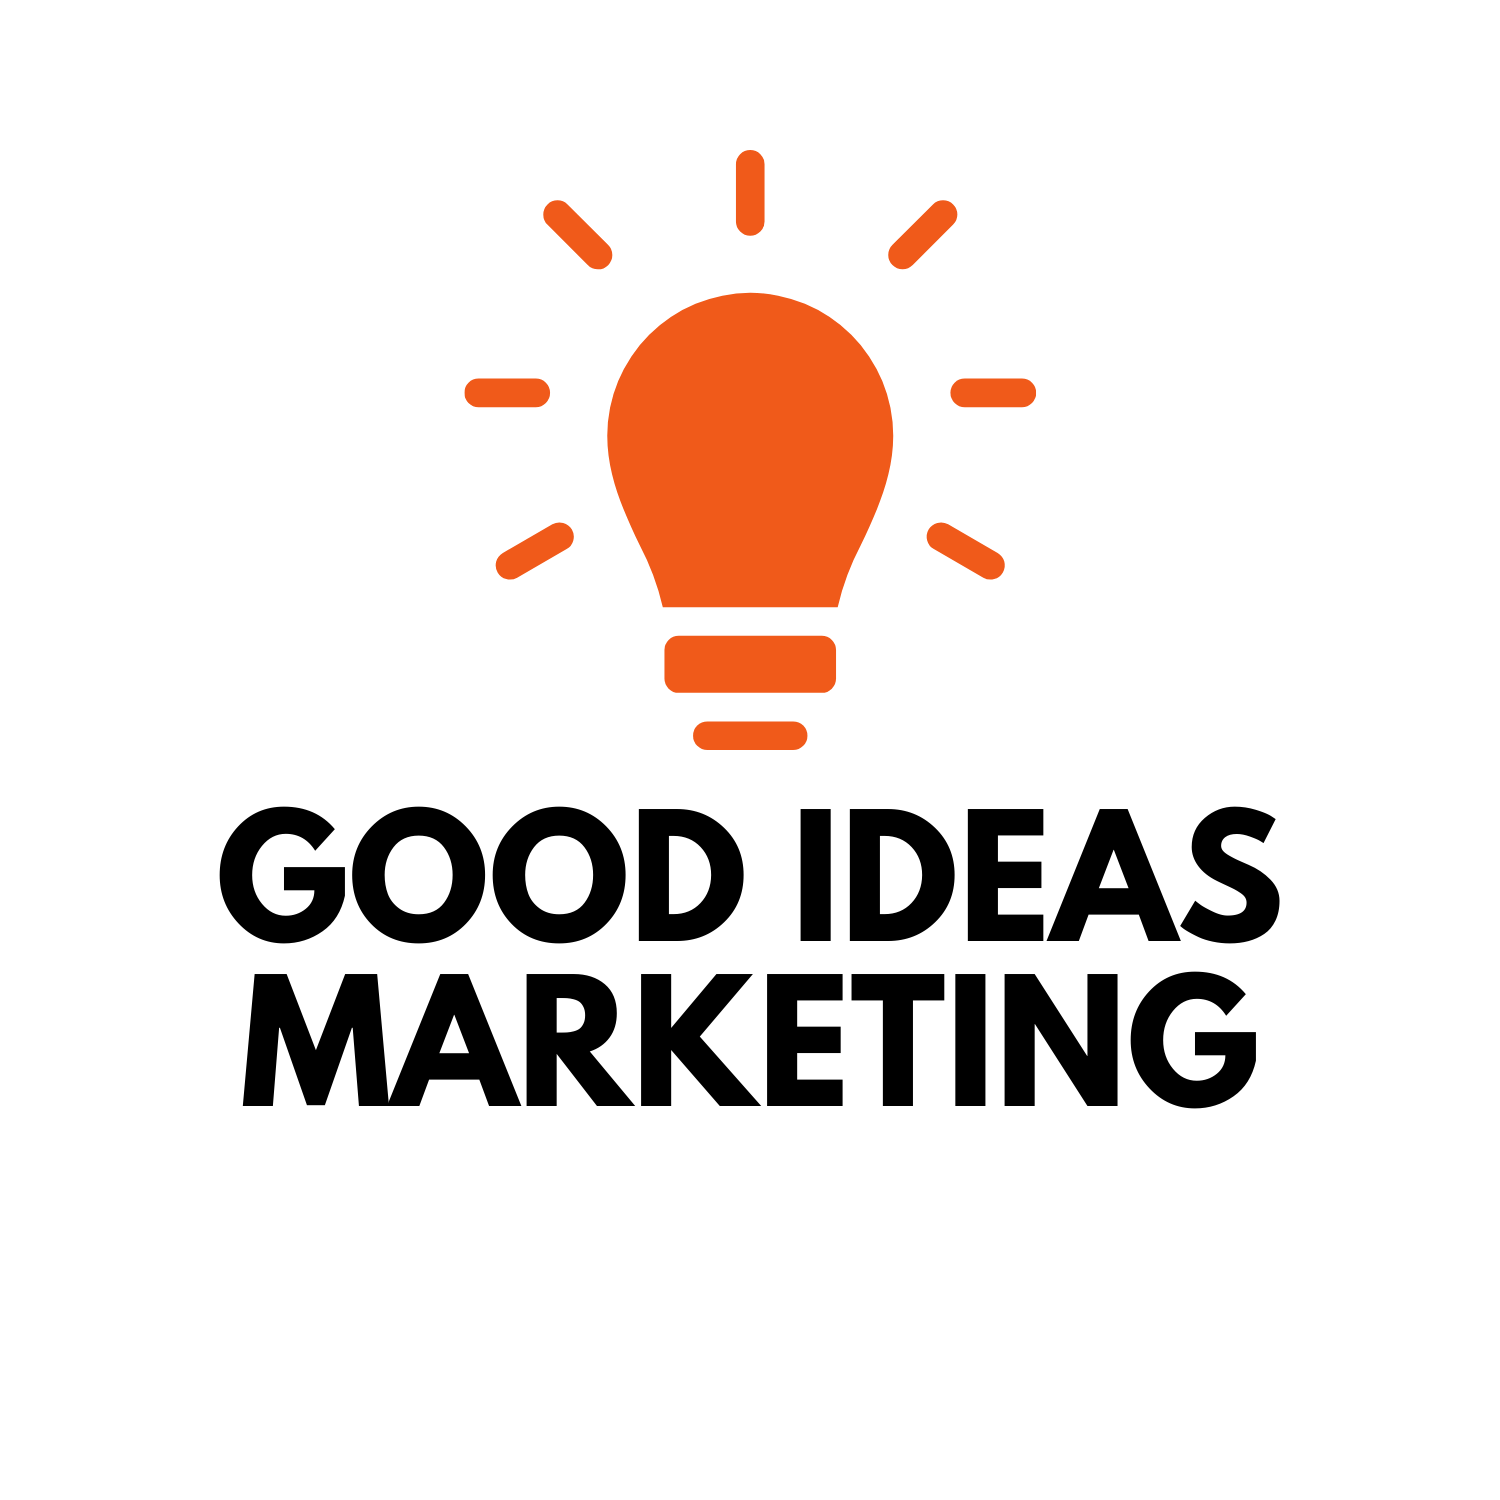 Good Ideas Marketing